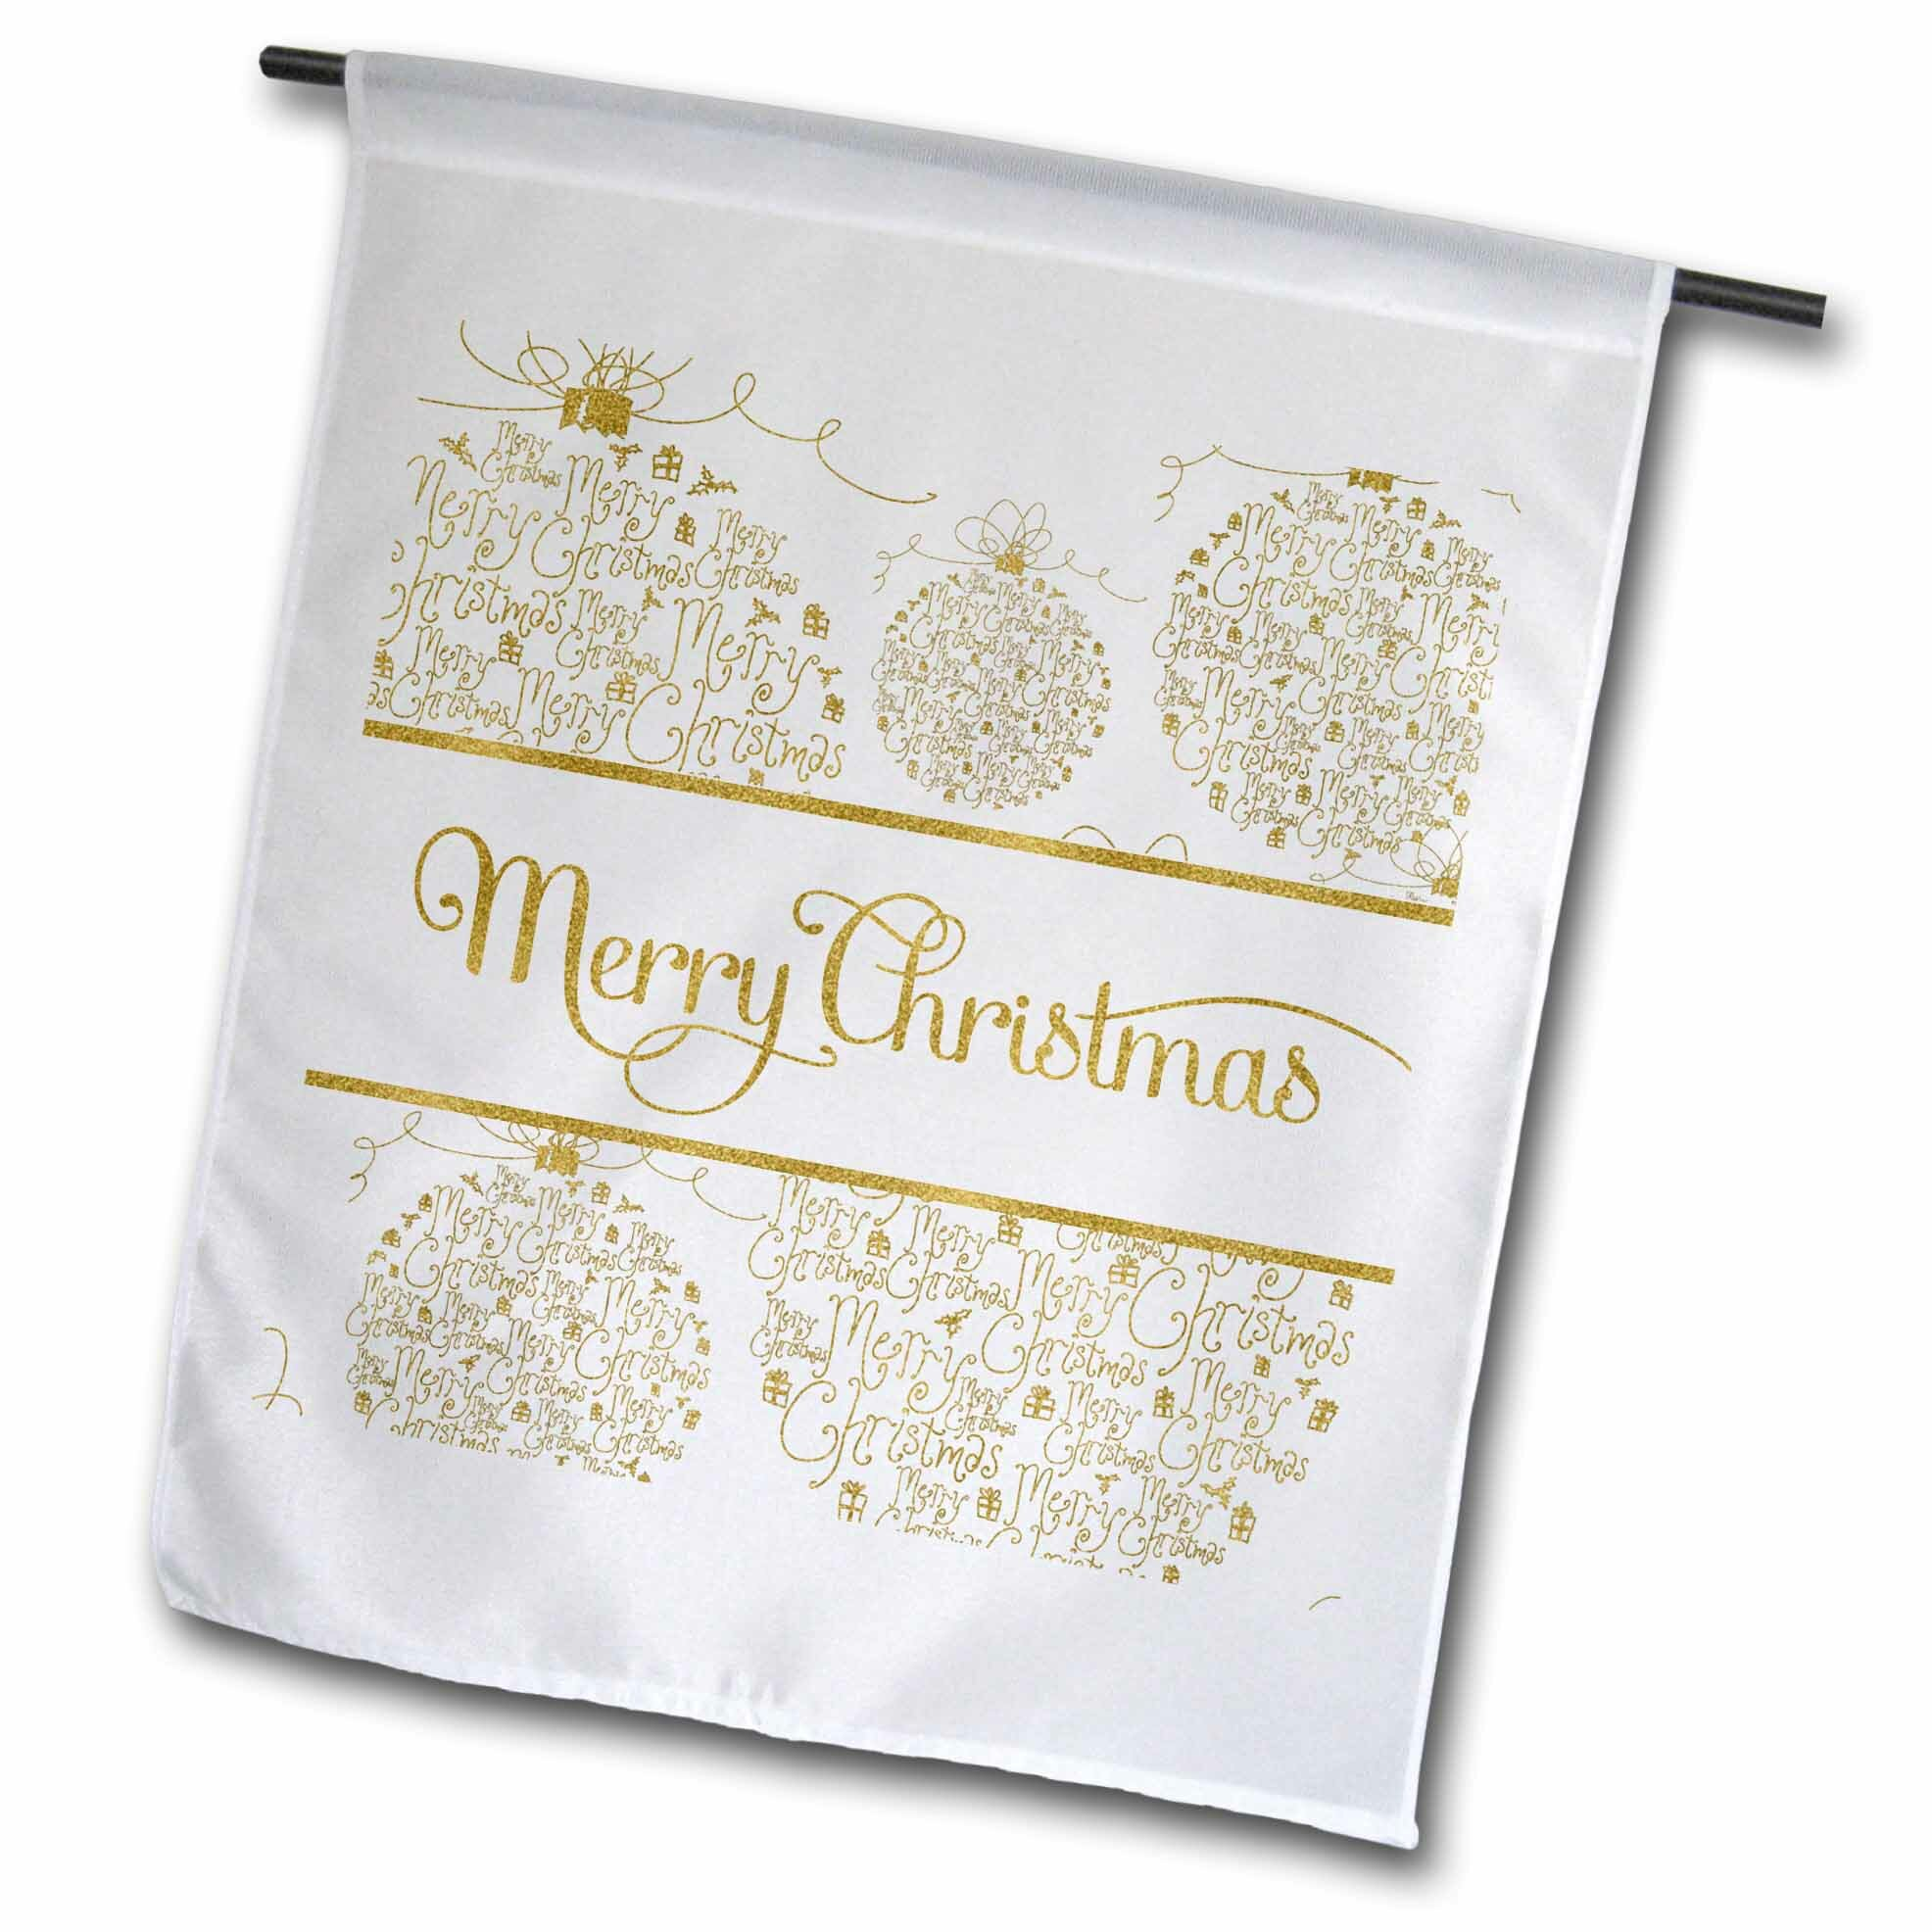 3drose Faux Leaf Merry Christmas With Word Art Ornaments On Polyester 18 X 12 In Garden Flag Wayfair